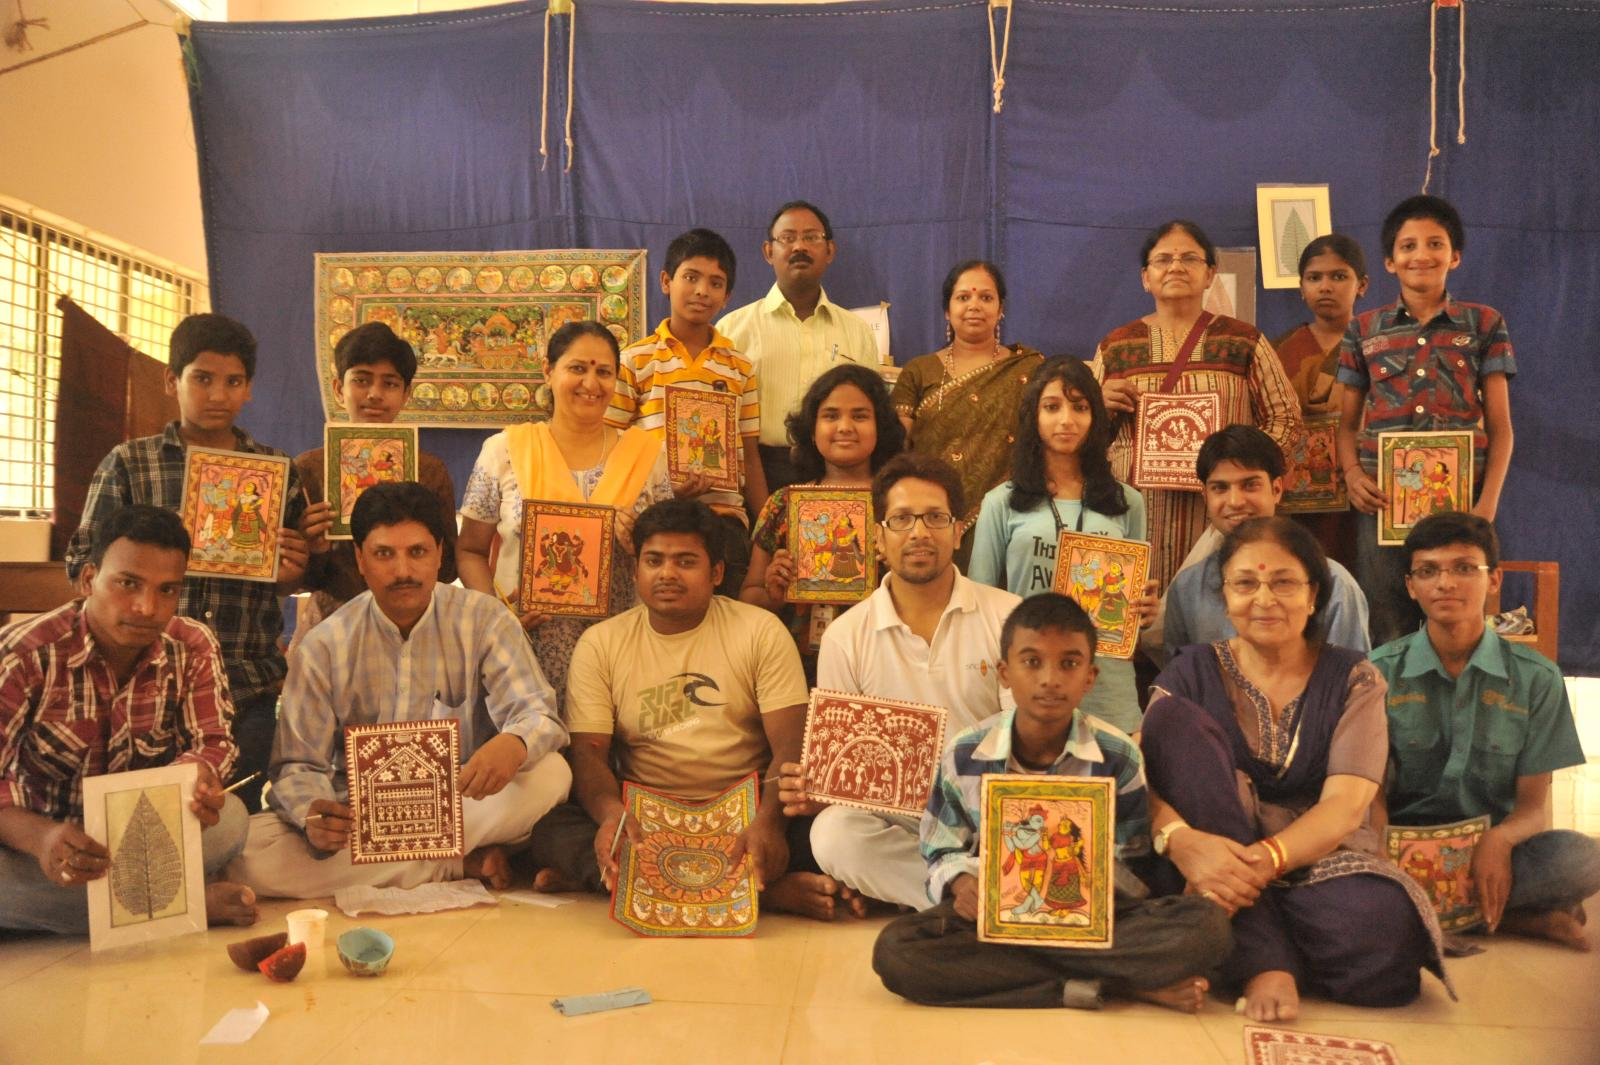 Pattachitra students ready to take stage